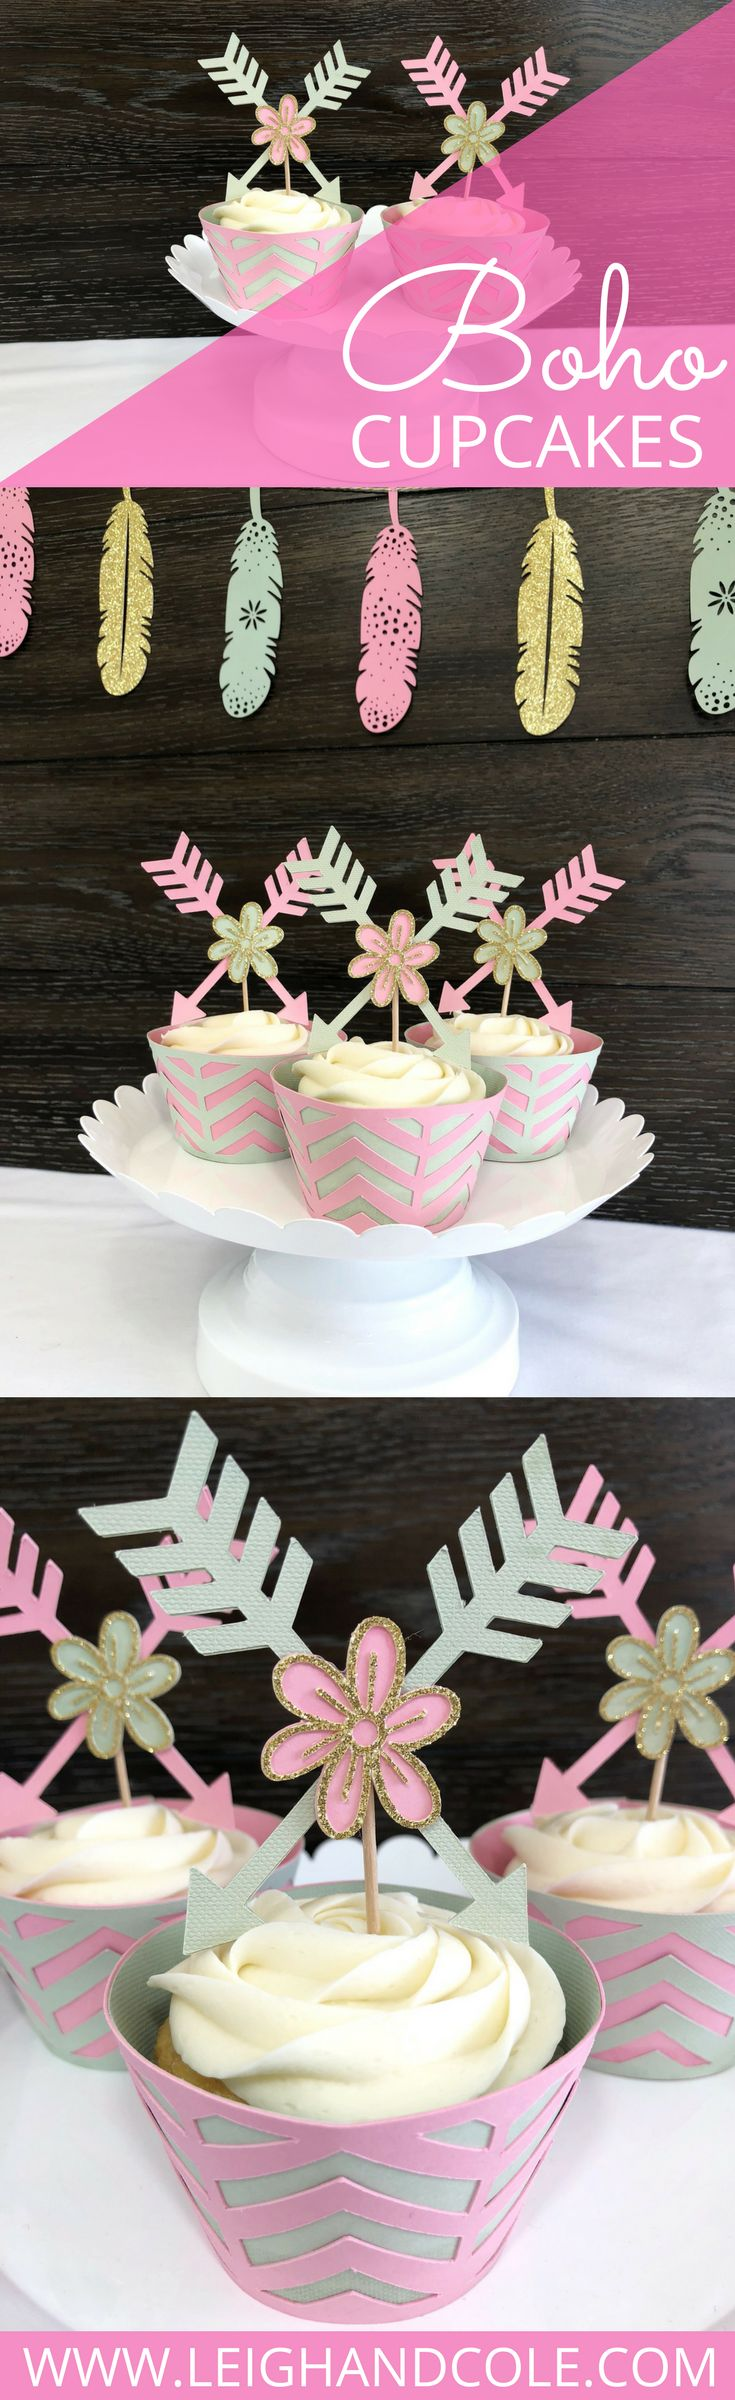 Nothing says bohemian baby shower or party like these pink, mint, and gold glitter cupcake toppers and chevron cupcake wrappers! Your dessert station isn't complete without these stunning tribal-inspired decorations featuring arrows, flowers, and chevrons.